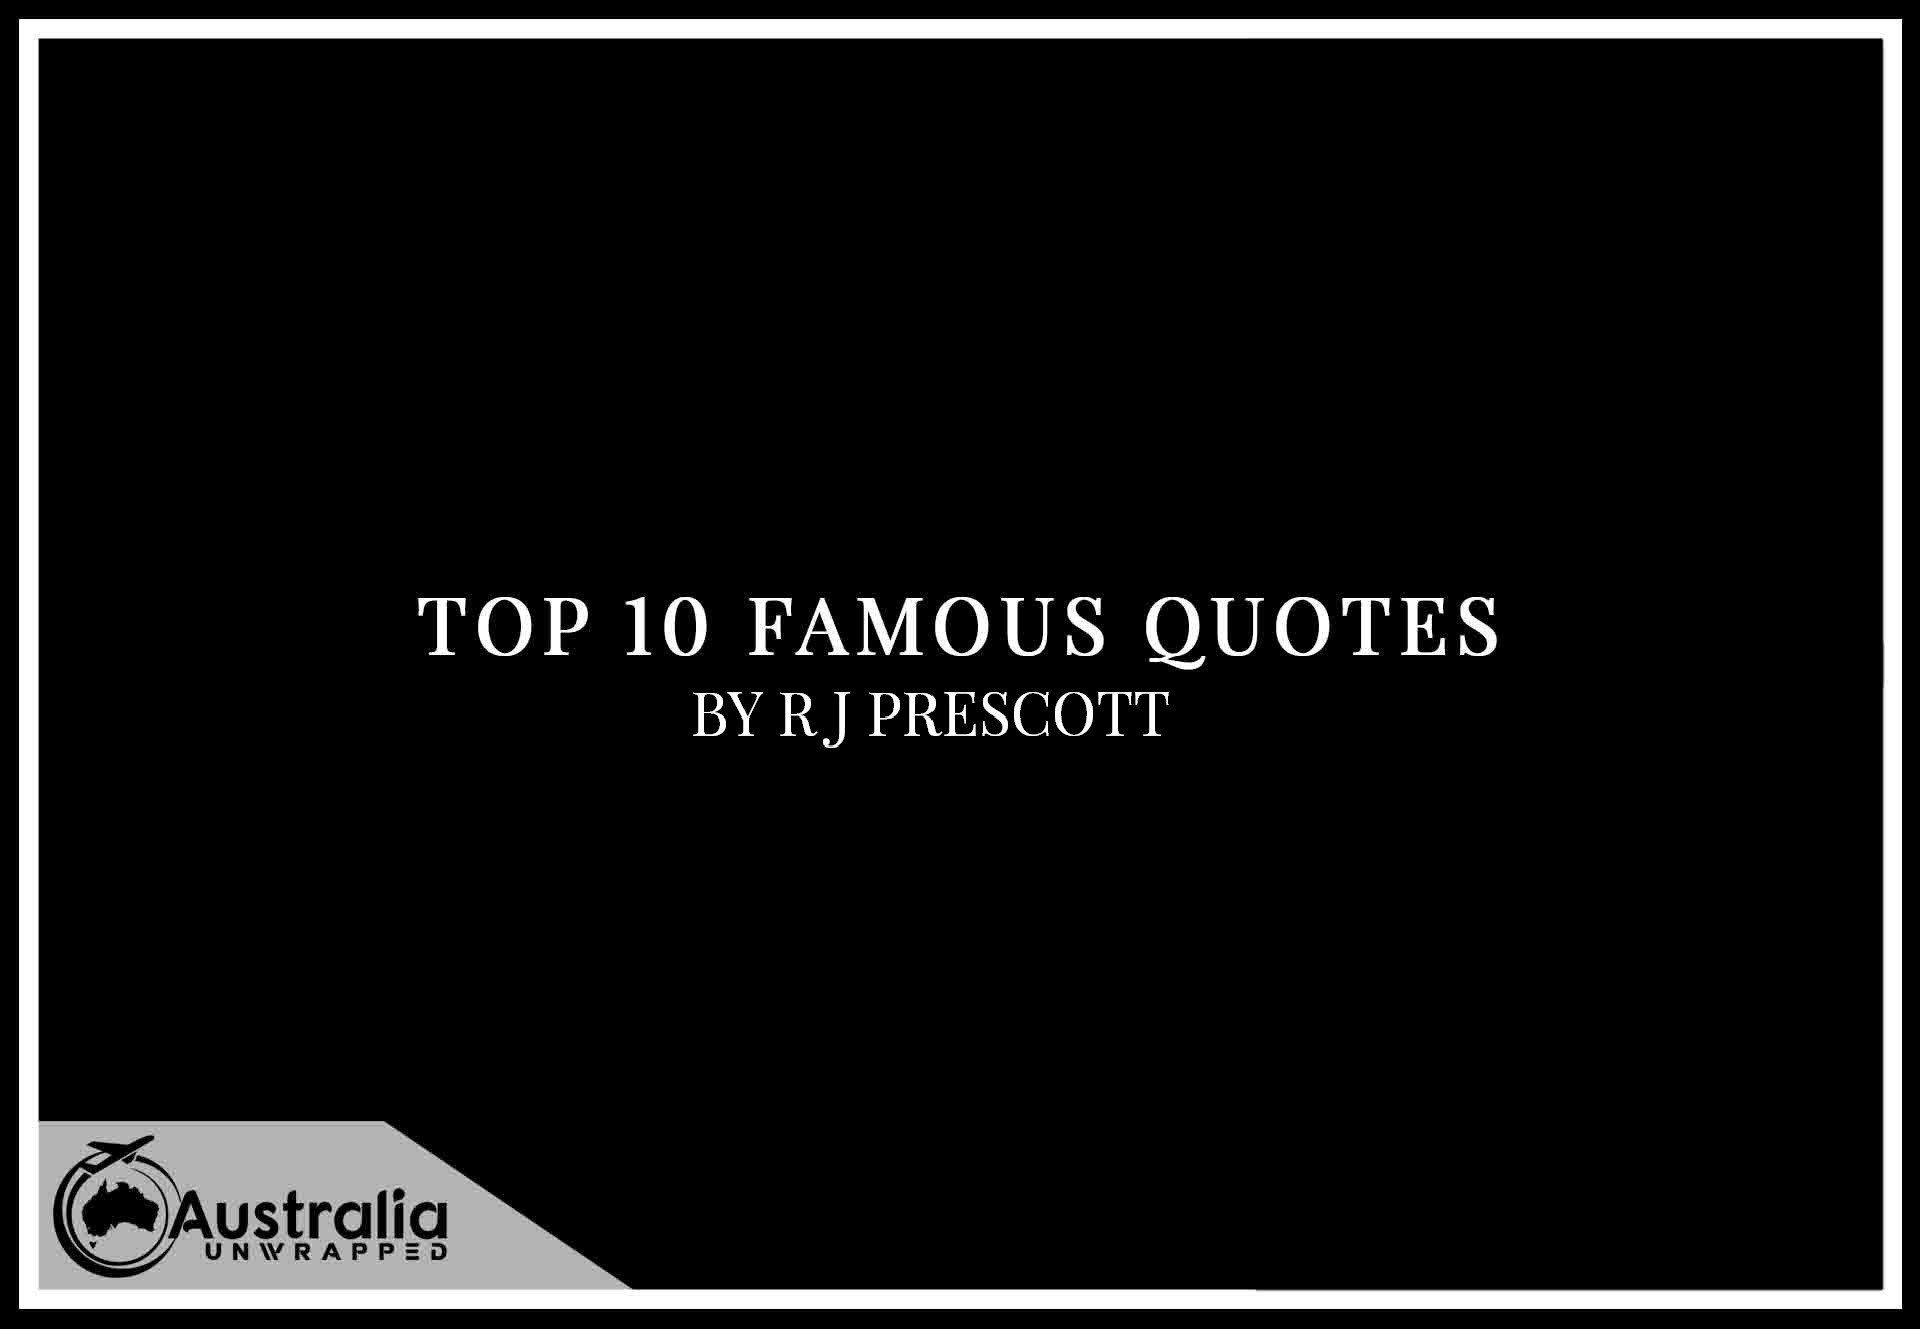 Top 10 Famous Quotes by Author R.J. Prescott